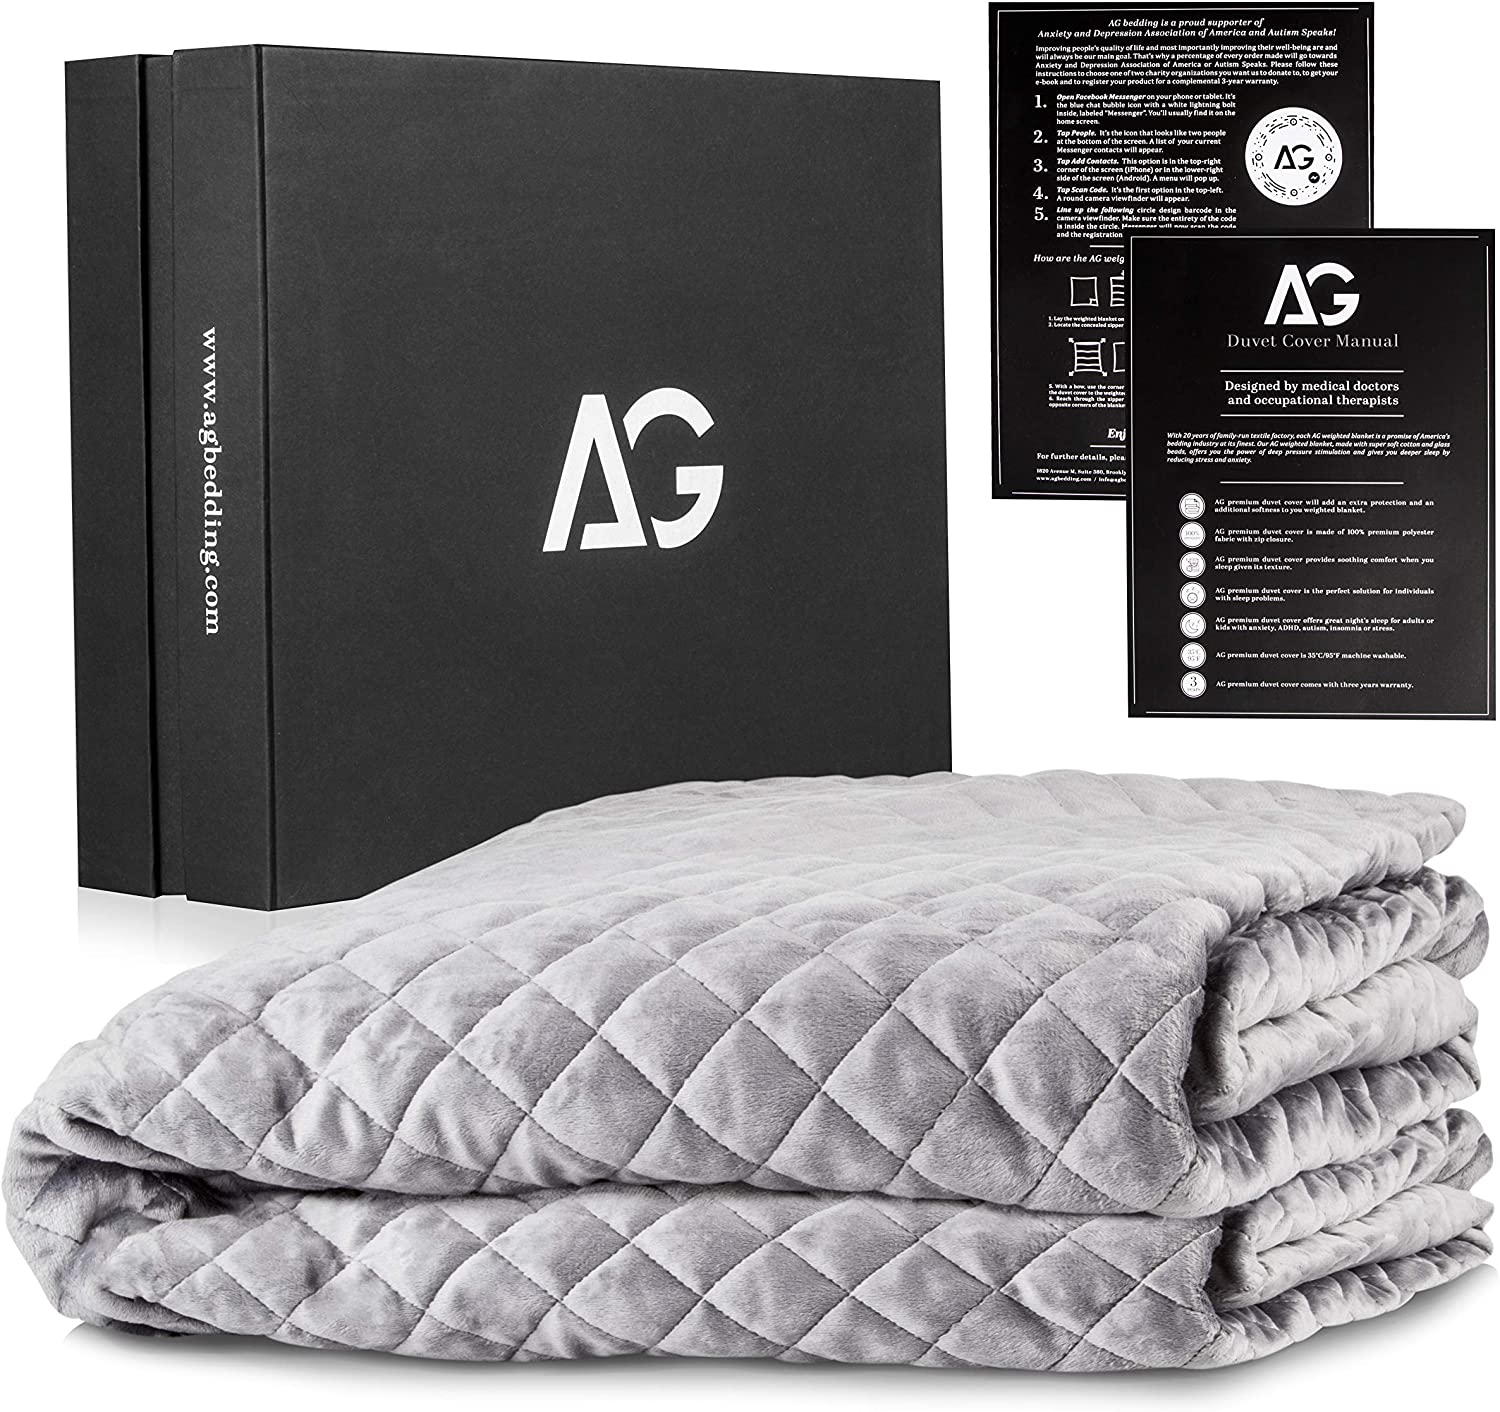 AG Bedding Removable Duvet Cover for Weighted Blanket - Duvet Cover - 48 x 78 Inches - Designed for Weighted Blanket Adult | Light Grey